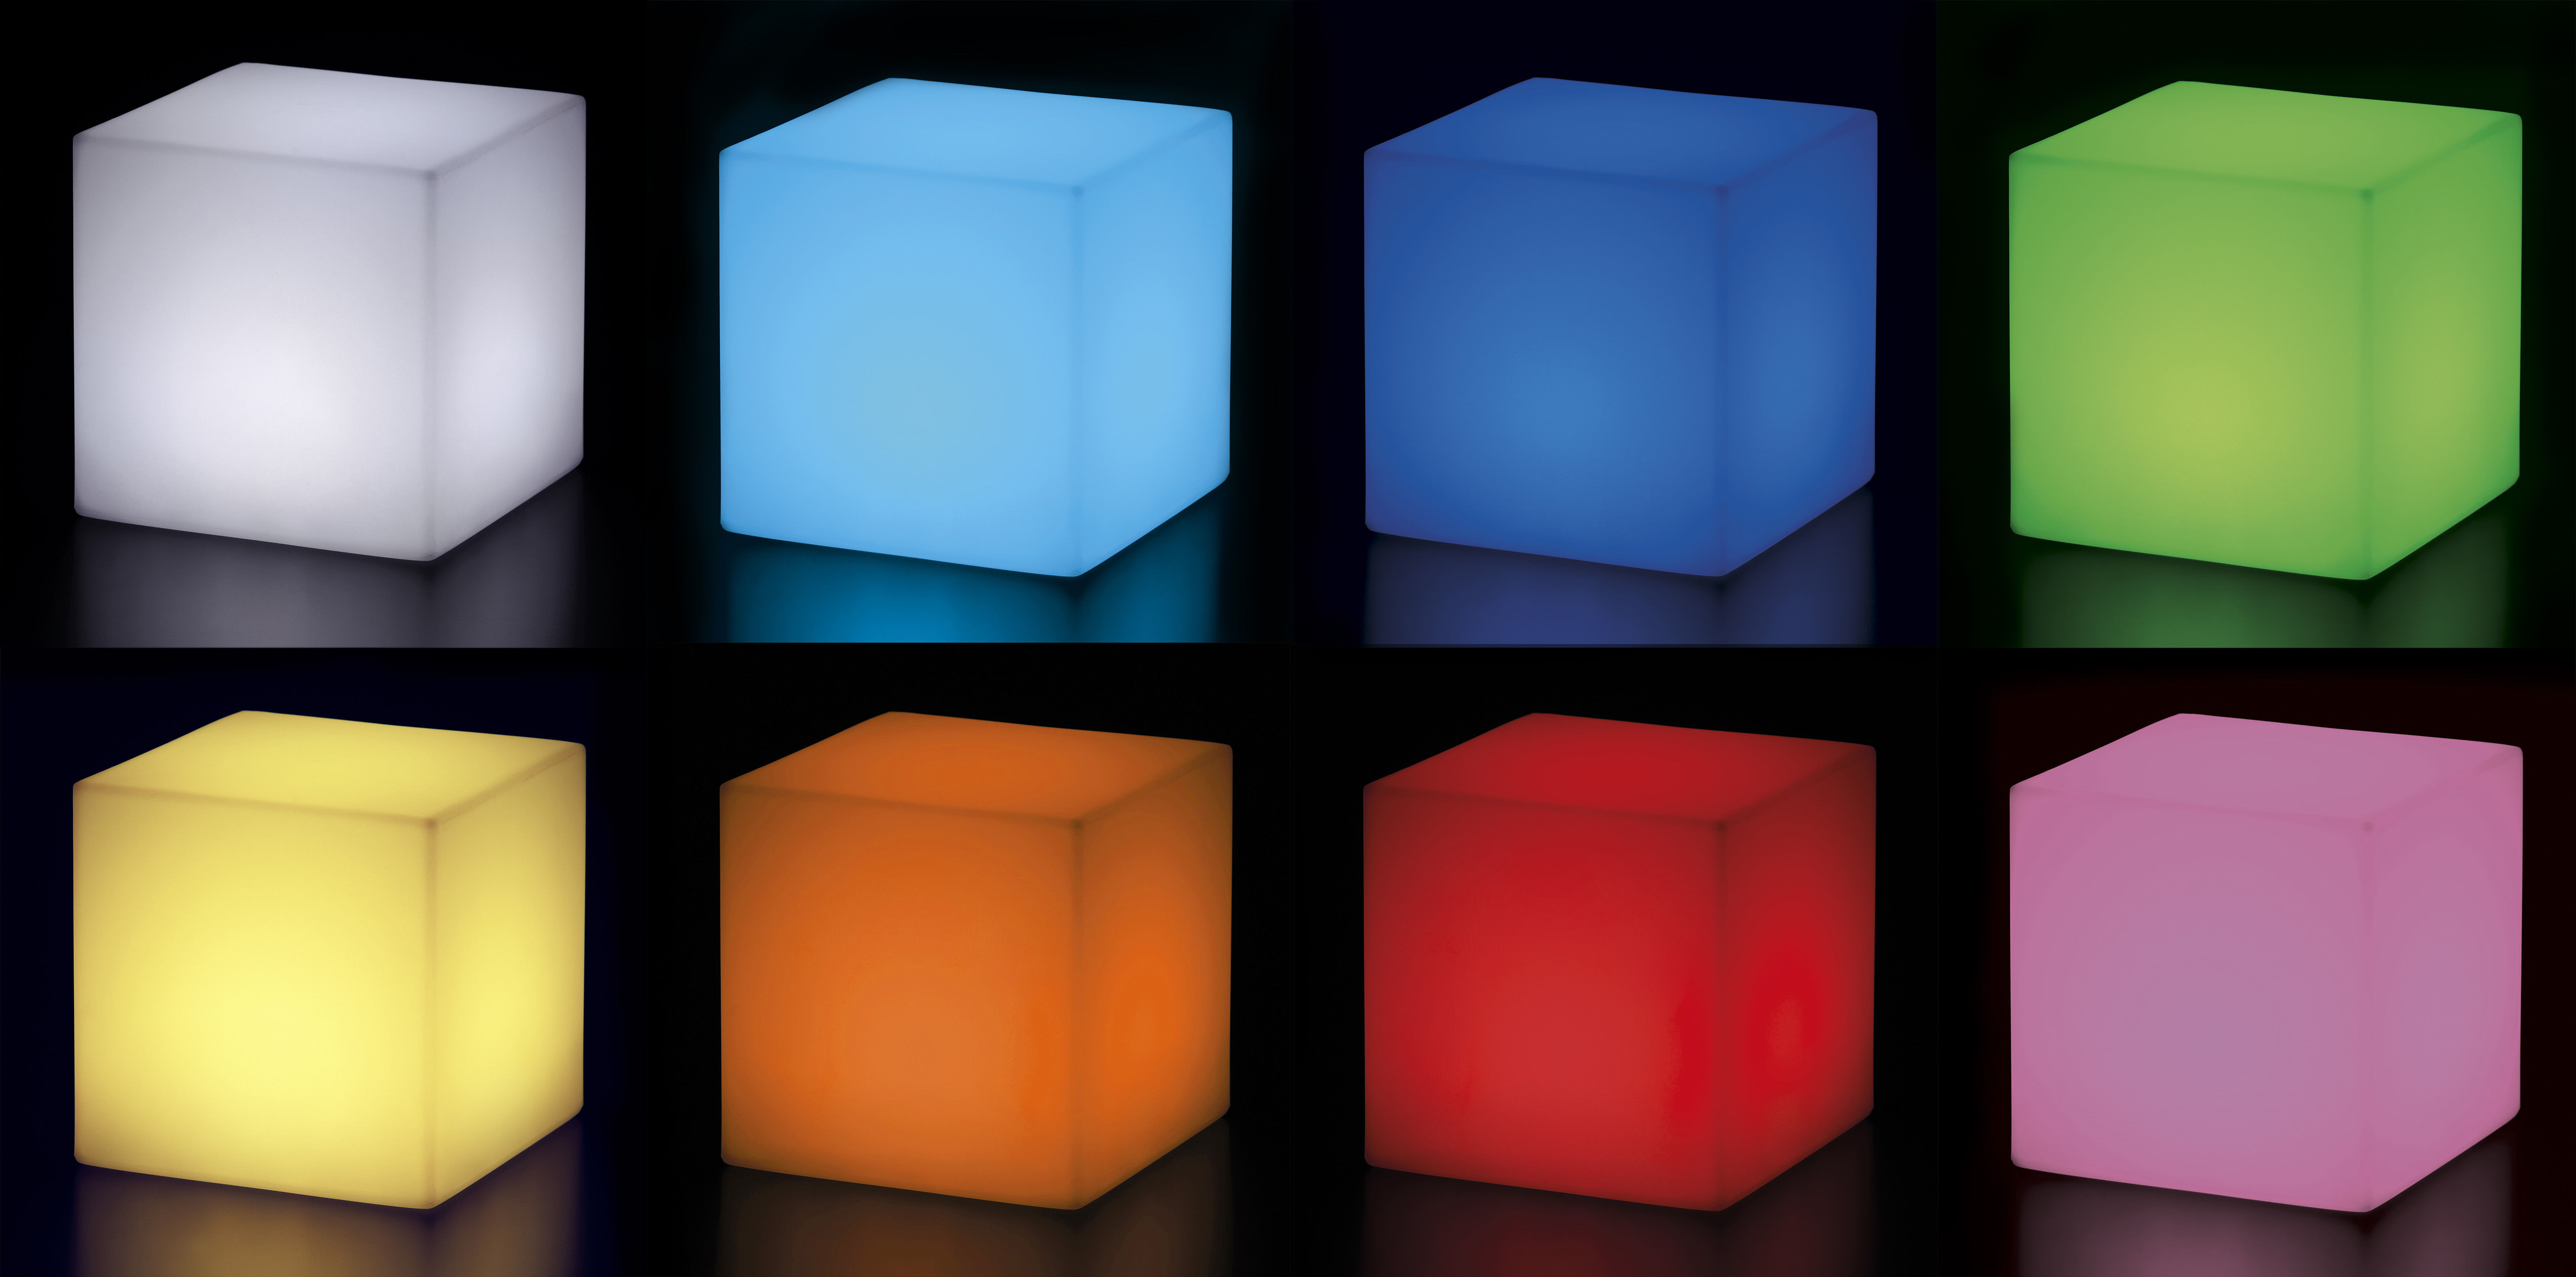 cubo outdoor led kabellos 25 x 25 x 25 cm f r den. Black Bedroom Furniture Sets. Home Design Ideas